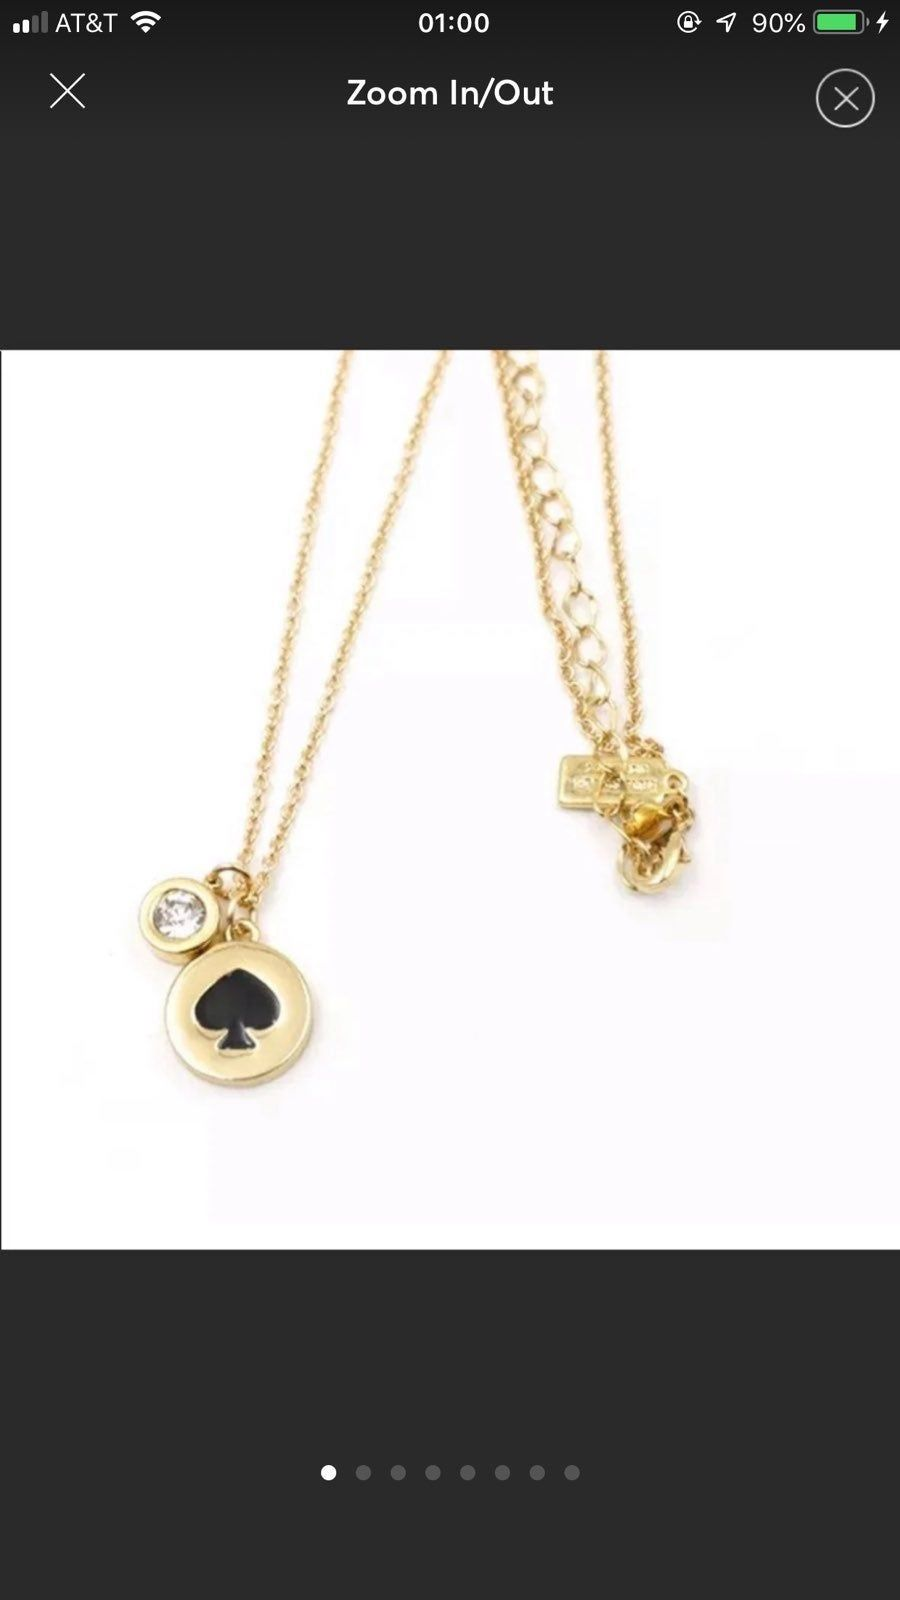 Nwt Kate Spade Black Spot The Spade Collection 12 Karat Gold Plated With Pave Crystals Necklace Con Crystal Pave Necklace Fashion Pouch Kate Spade Necklace